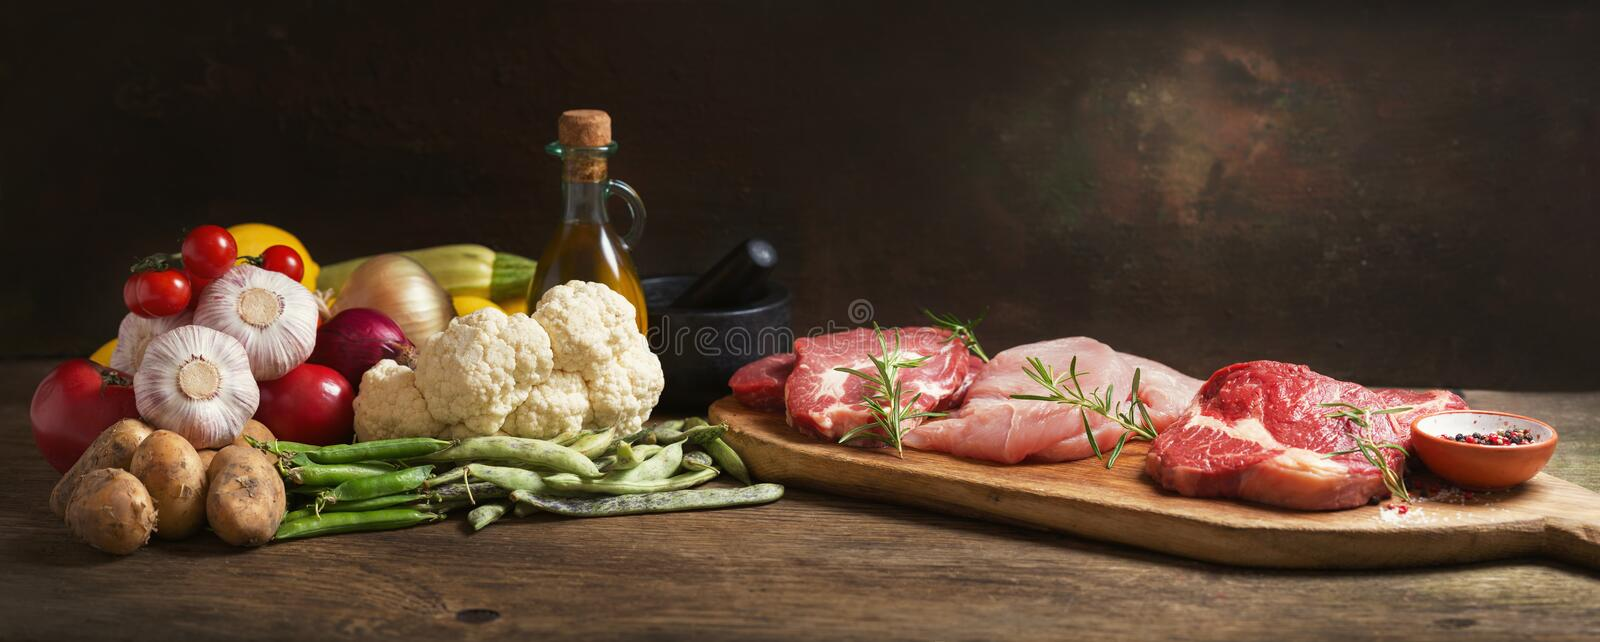 Various types of fresh meat steaks: beef, pork and turkey and ingredients for cooking stock images